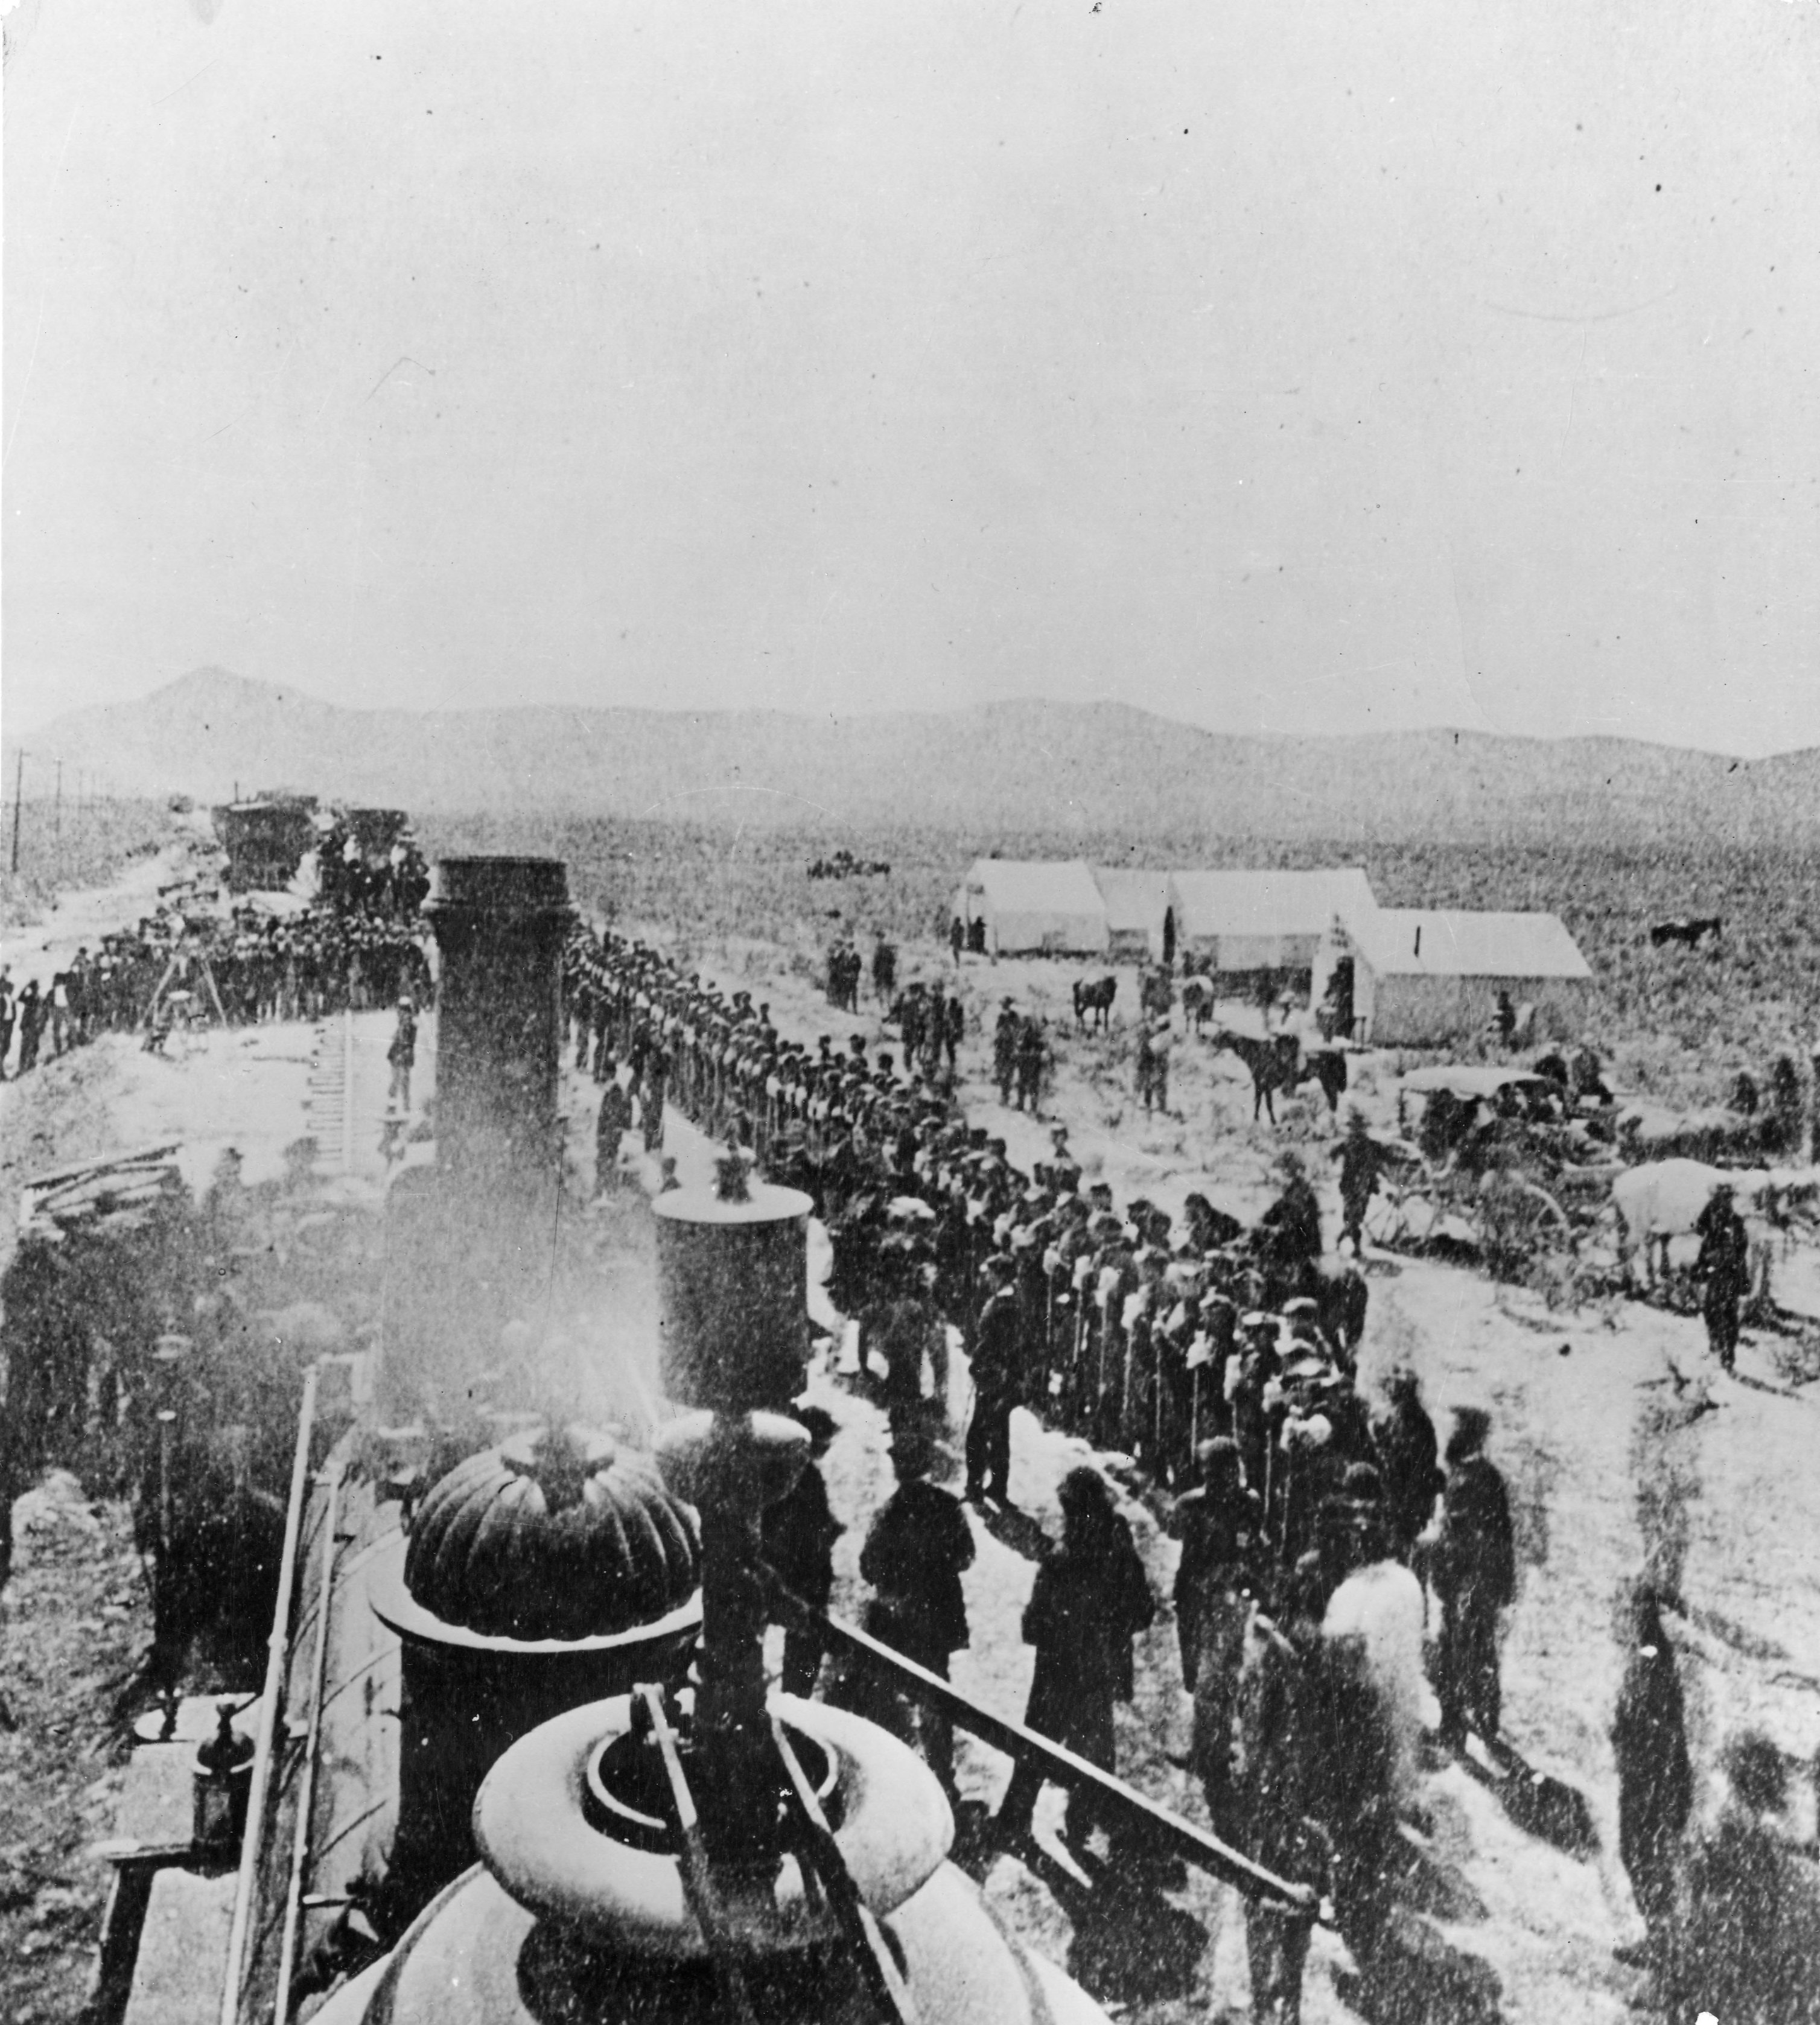 """A view at Promontory, Utah, May 10, 1869, during the """"Last Spike"""" ceremony when rails of the Central Pacific (now Southern Pacific) and the Union Pacific were joined to complete the first transcontinental railroad. The picture is taken from the U.P. locomotive #119, looking westward, and shows the four companies of the 21st Infantry in formation alongside the track of Central Pacific's locomotive, """"Jupiter,"""" with tent-buildings."""